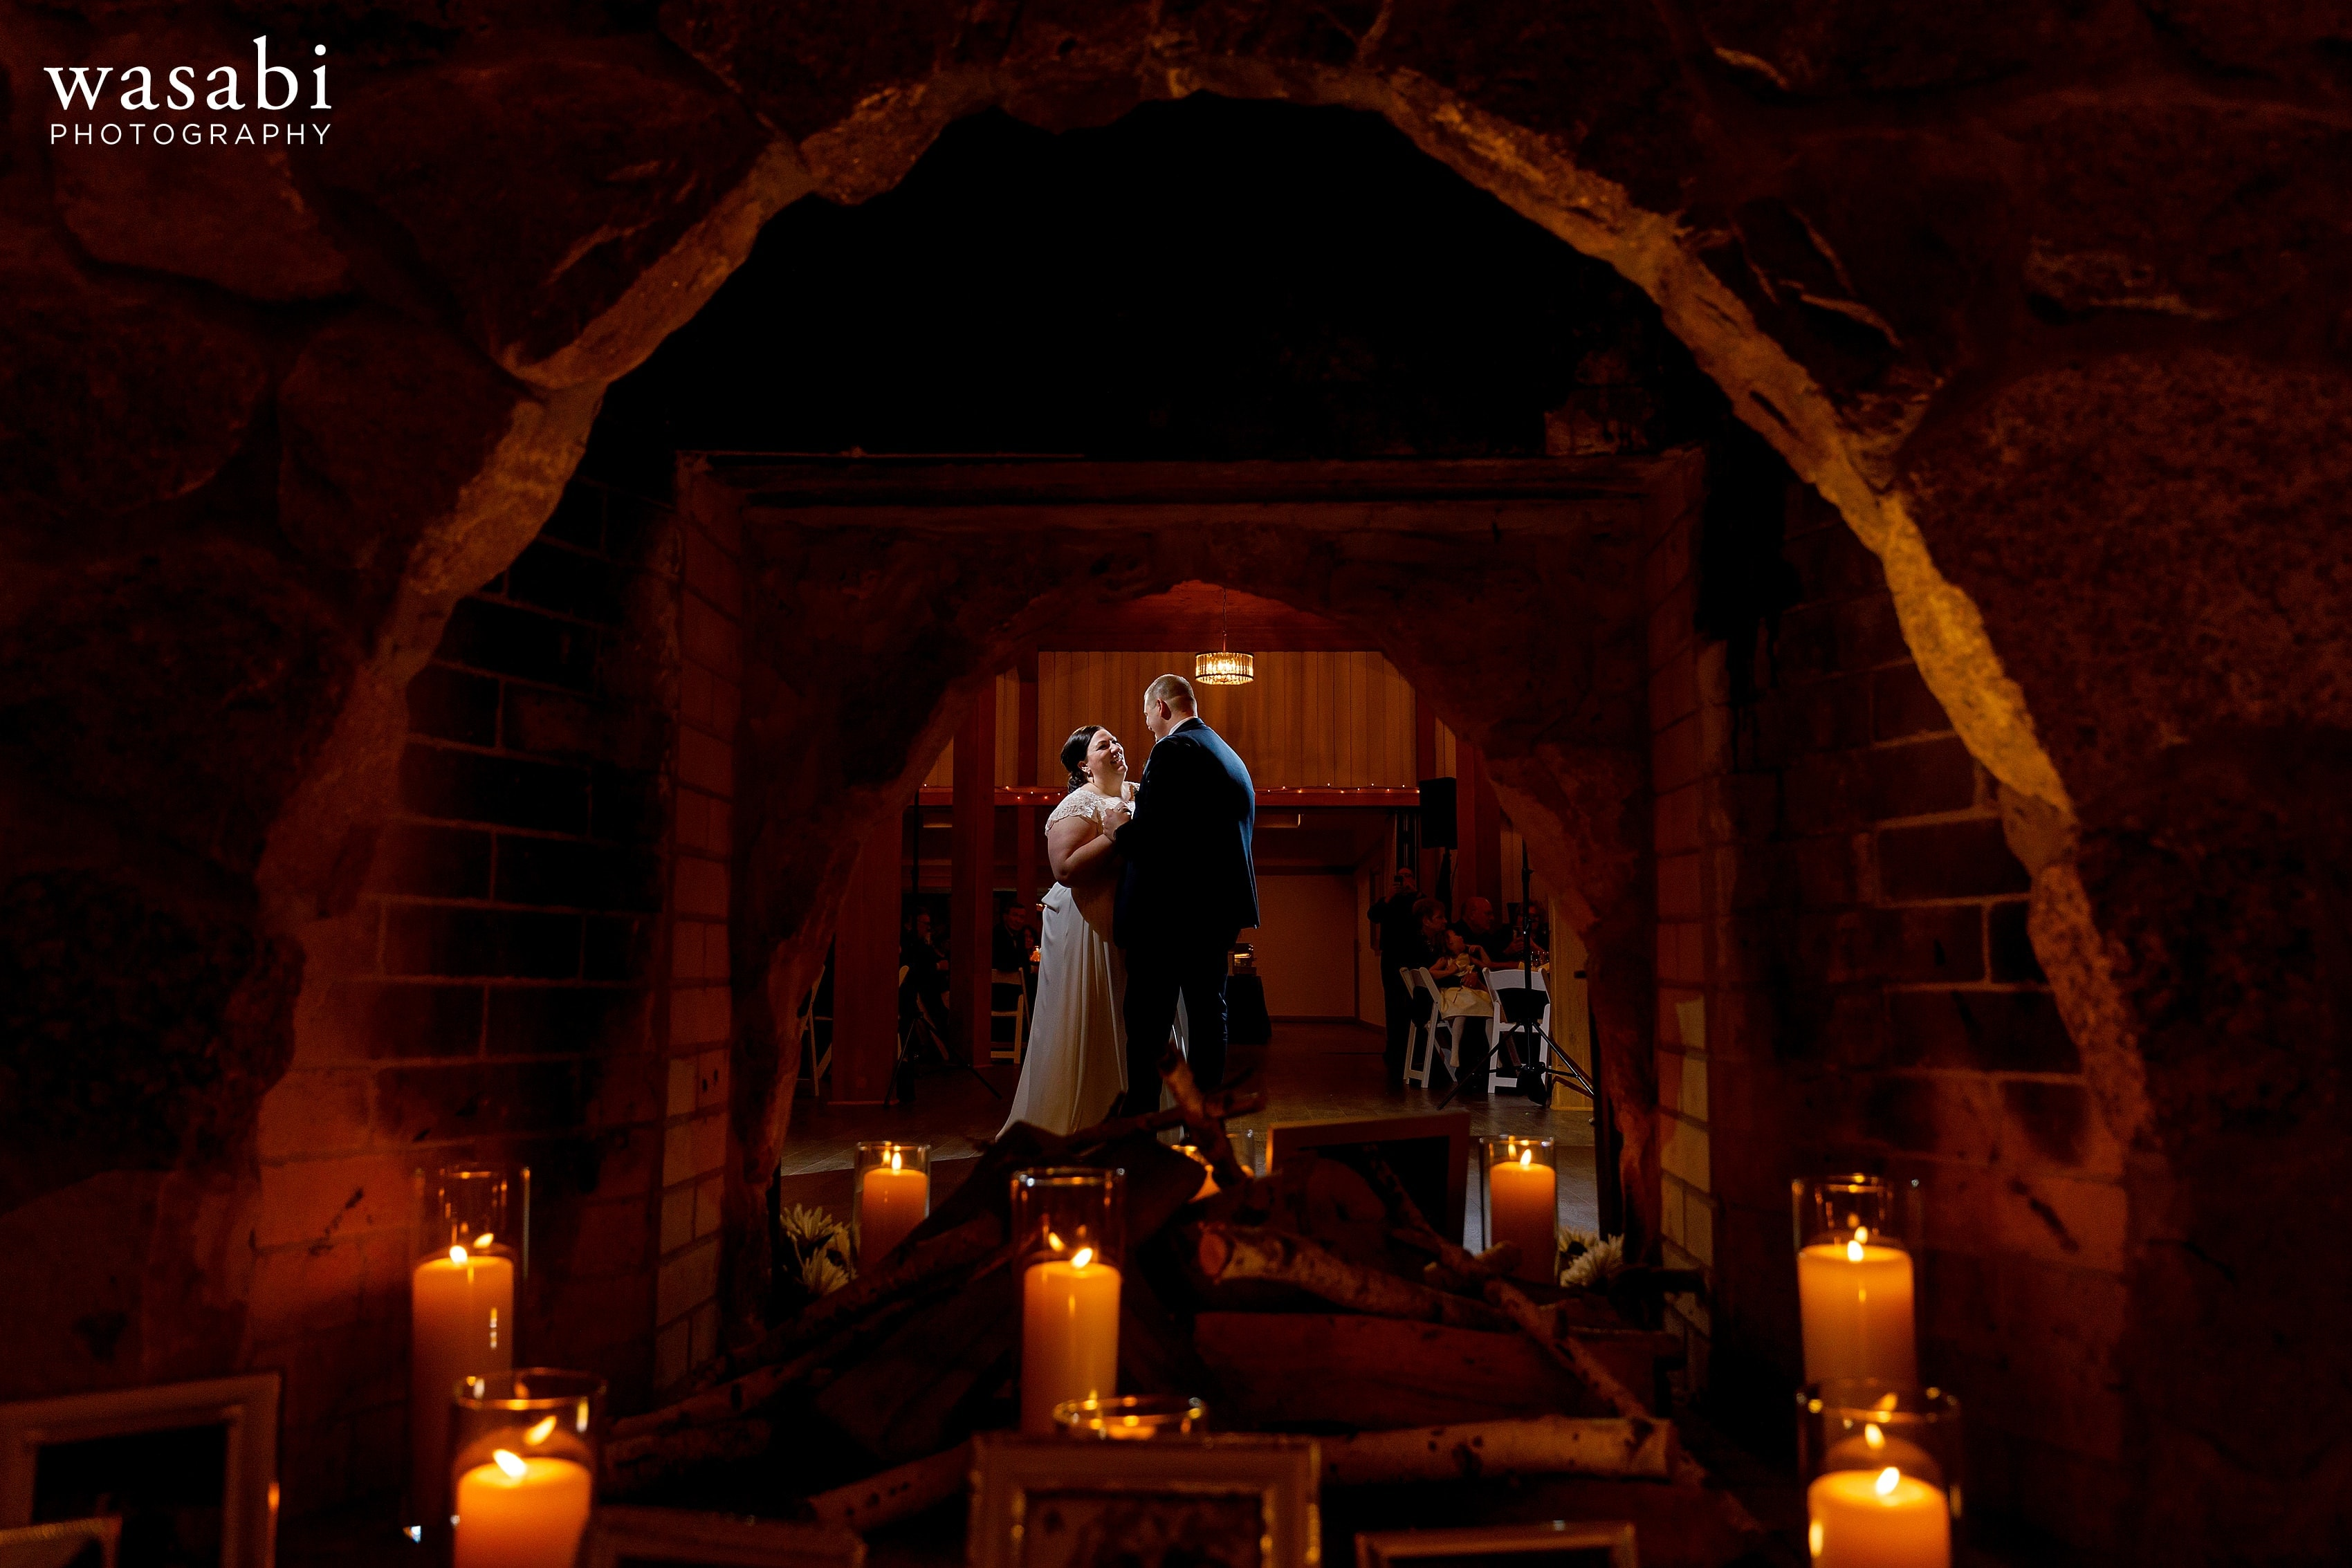 bride and groom share first dance with view through fireplace and candles in the foreground during Oak Brook Bath and Tennis Club wedding reception